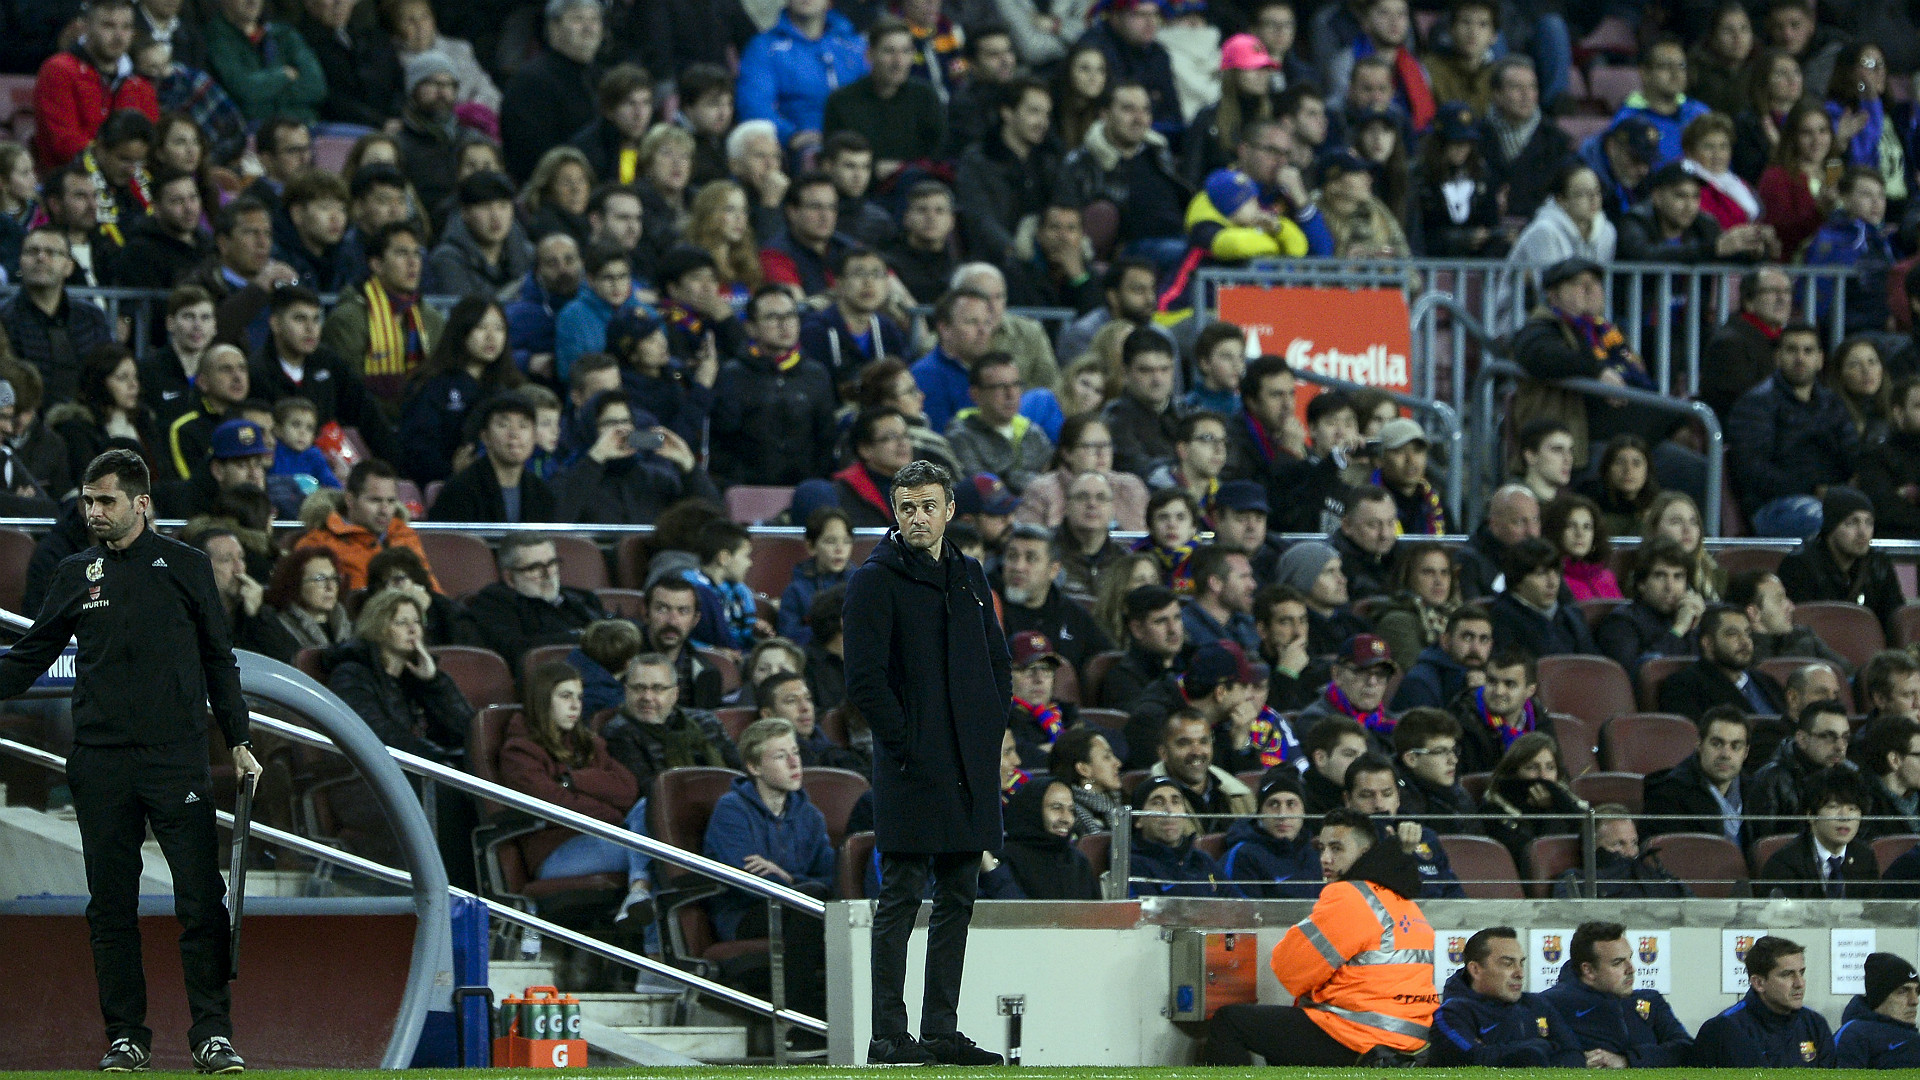 Enrique has been made a scapegoat for Barcelona's failings